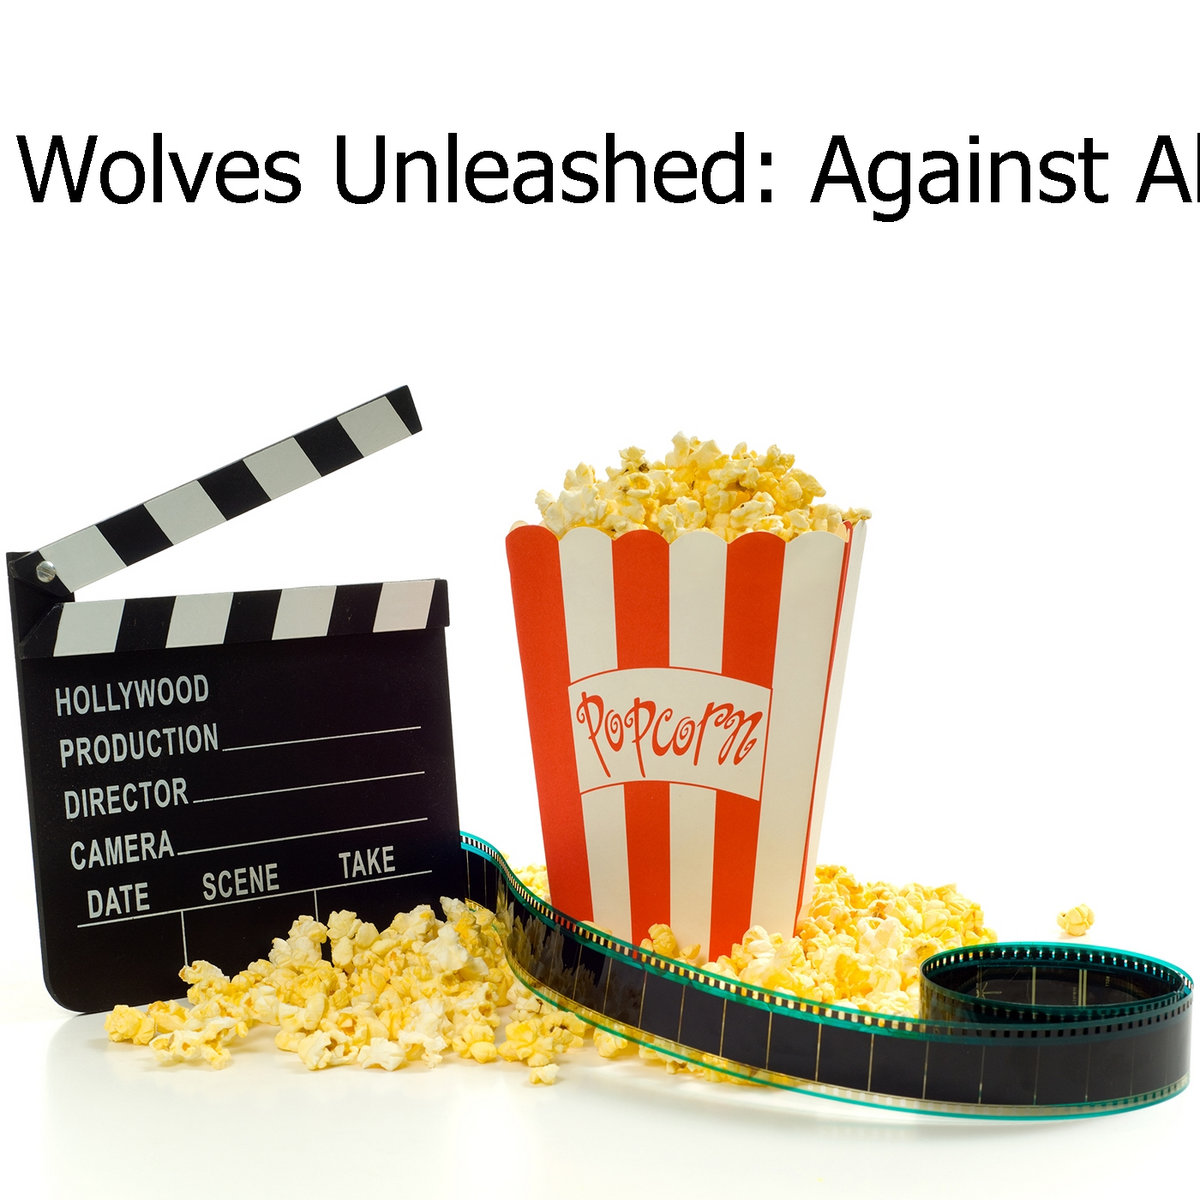 1080P MOVIE 2018 YEAR WOLVES UNLEASHED: AGAINST ALL ODDS TORRENT HQ